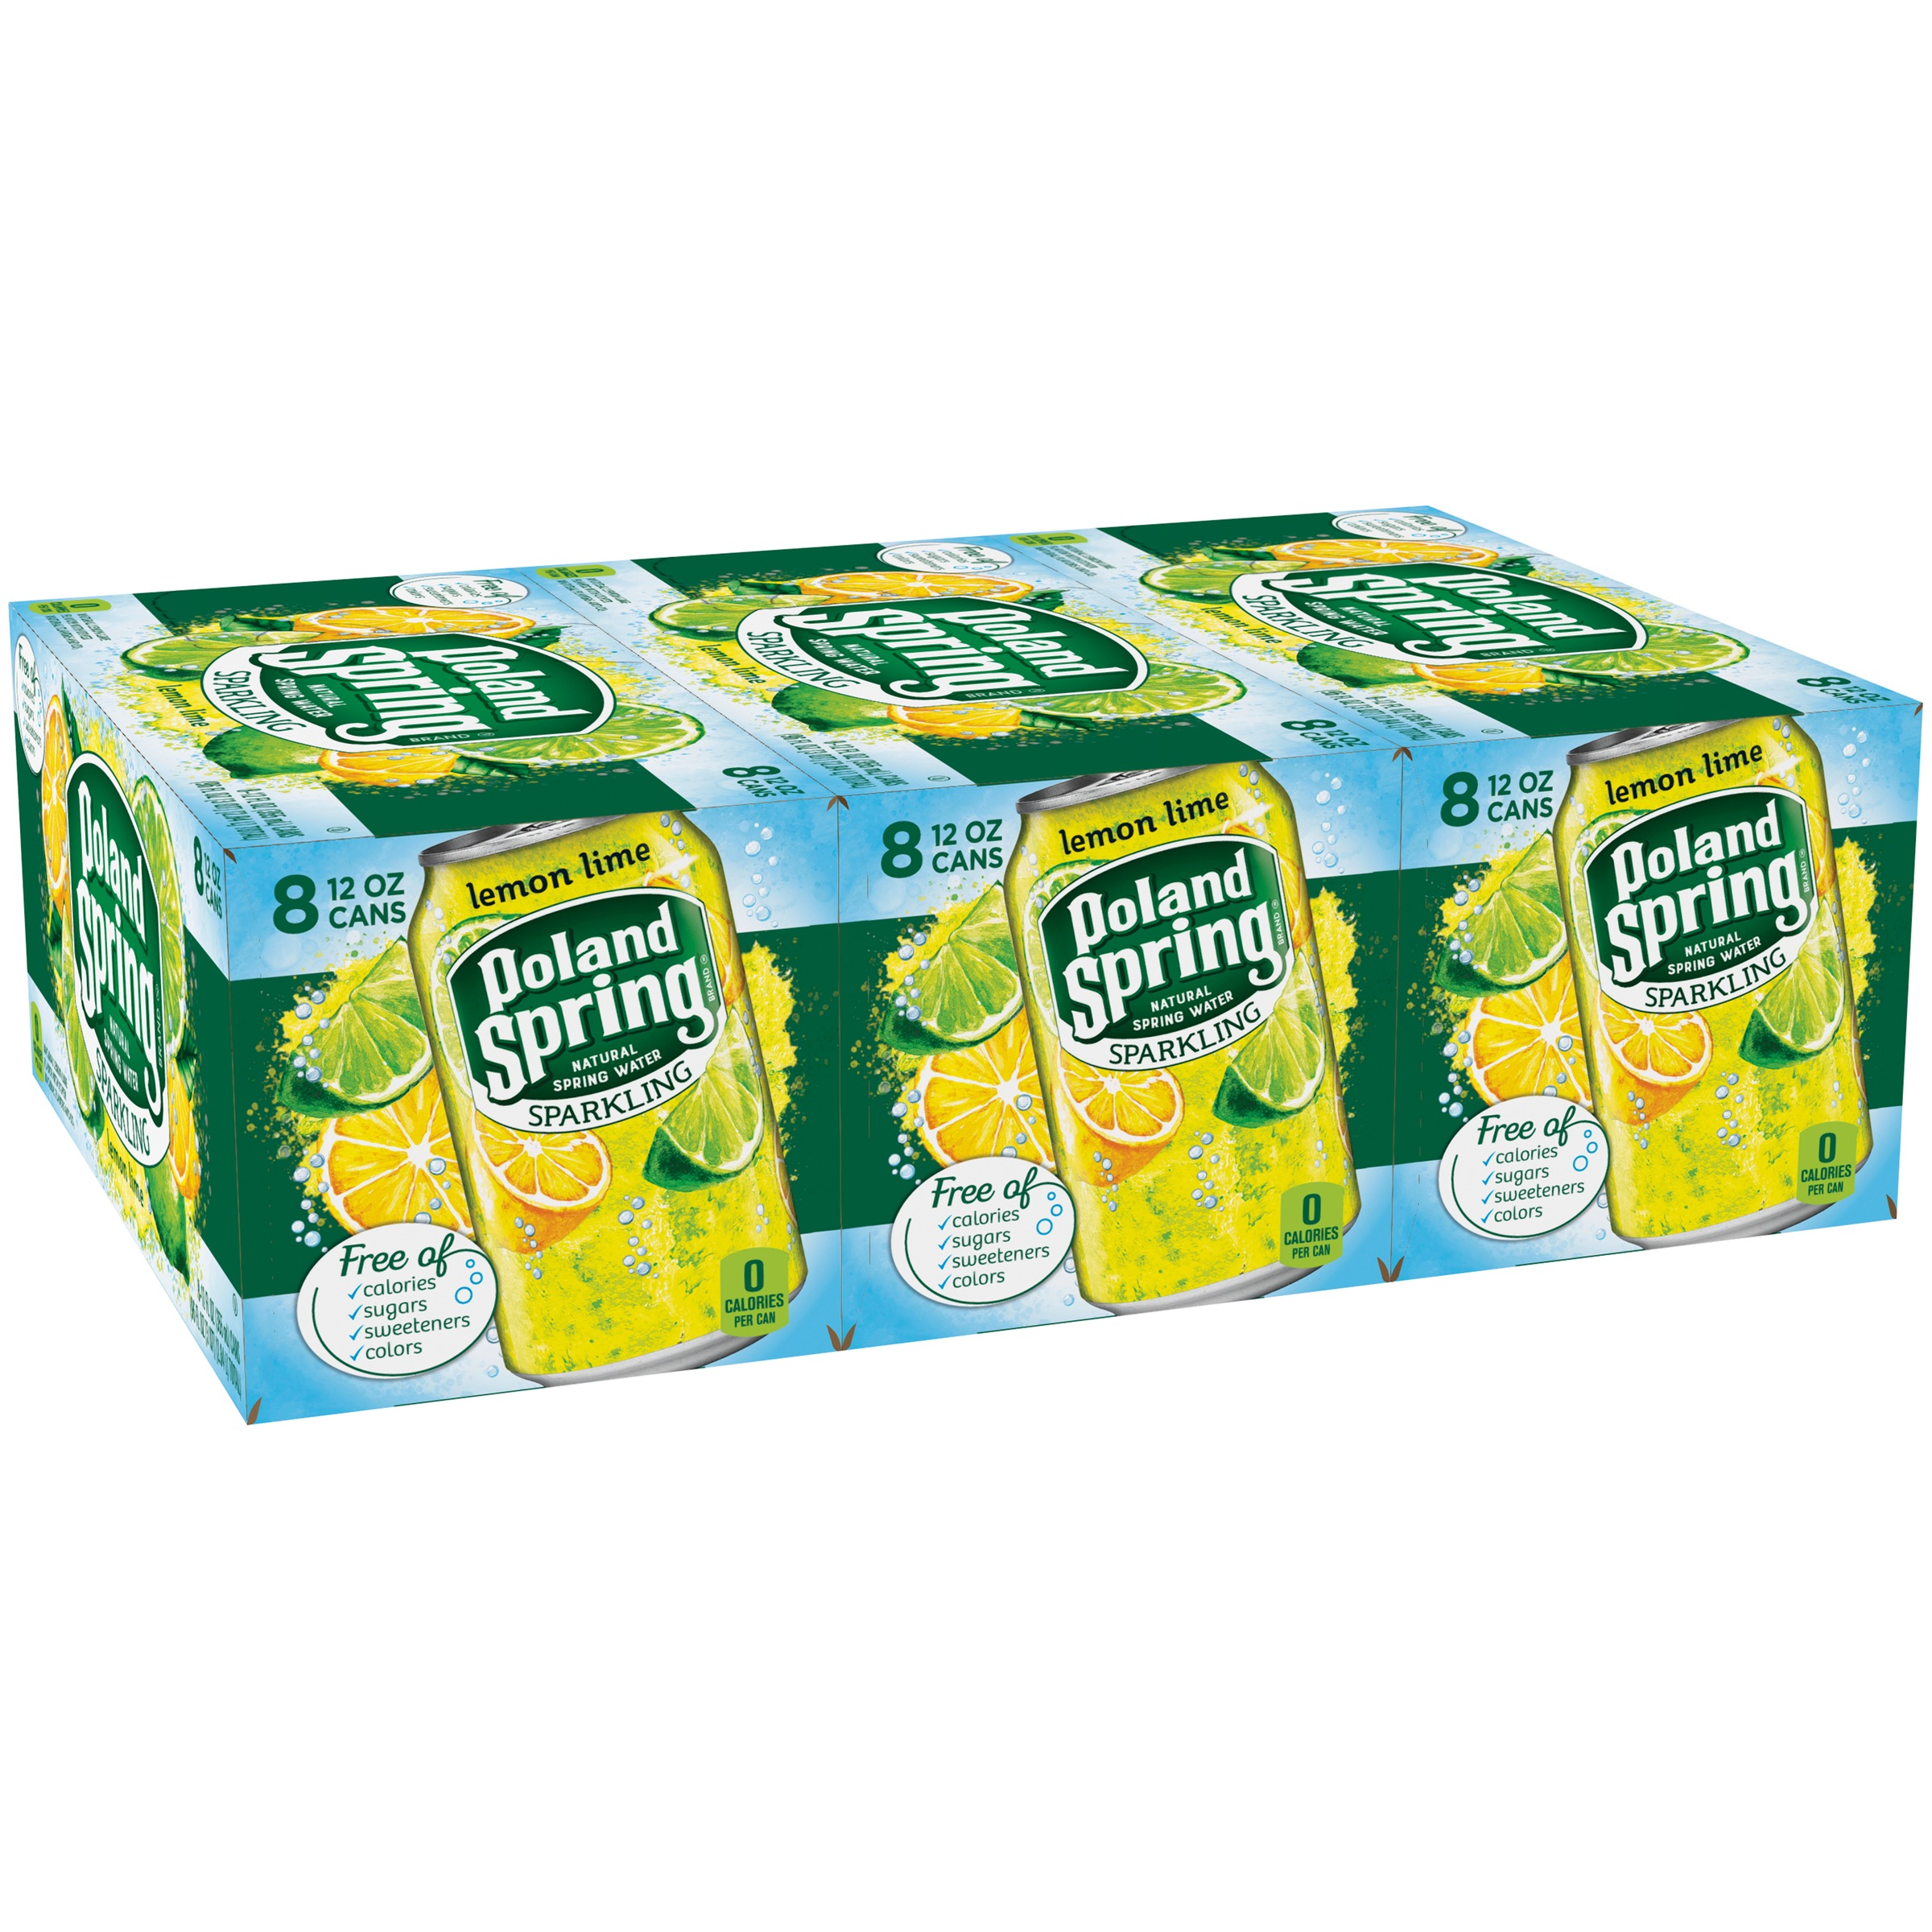 Poland Spring Sparkling Water, Lemon Lime, 12 oz. Cans (Pack of 24)